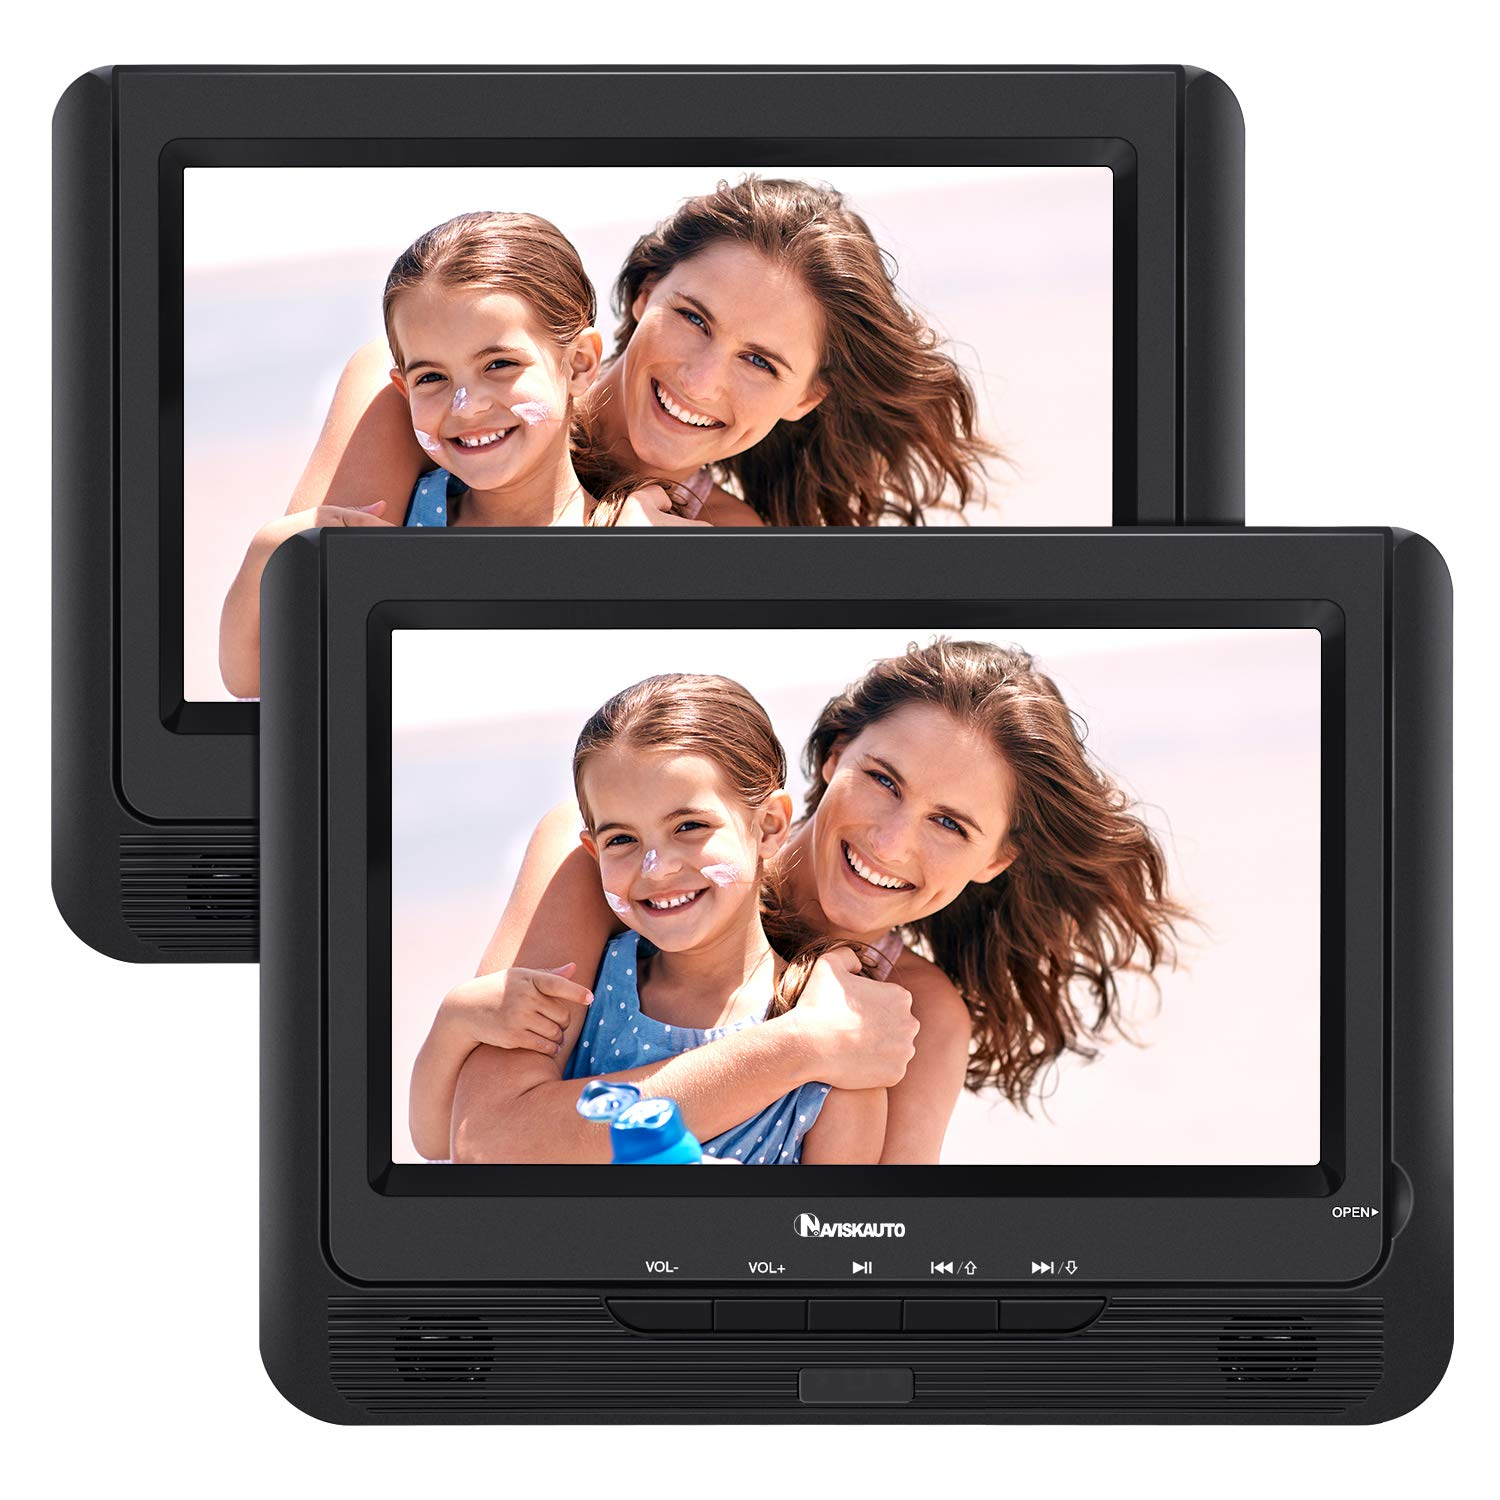 NAVISKAUTO 9'' Portable Car DVD Player Dual Screen with 5-Hour Built-in Rechargeable Battery, Last Memory and Region-Free (Two Screens Play One Movie)